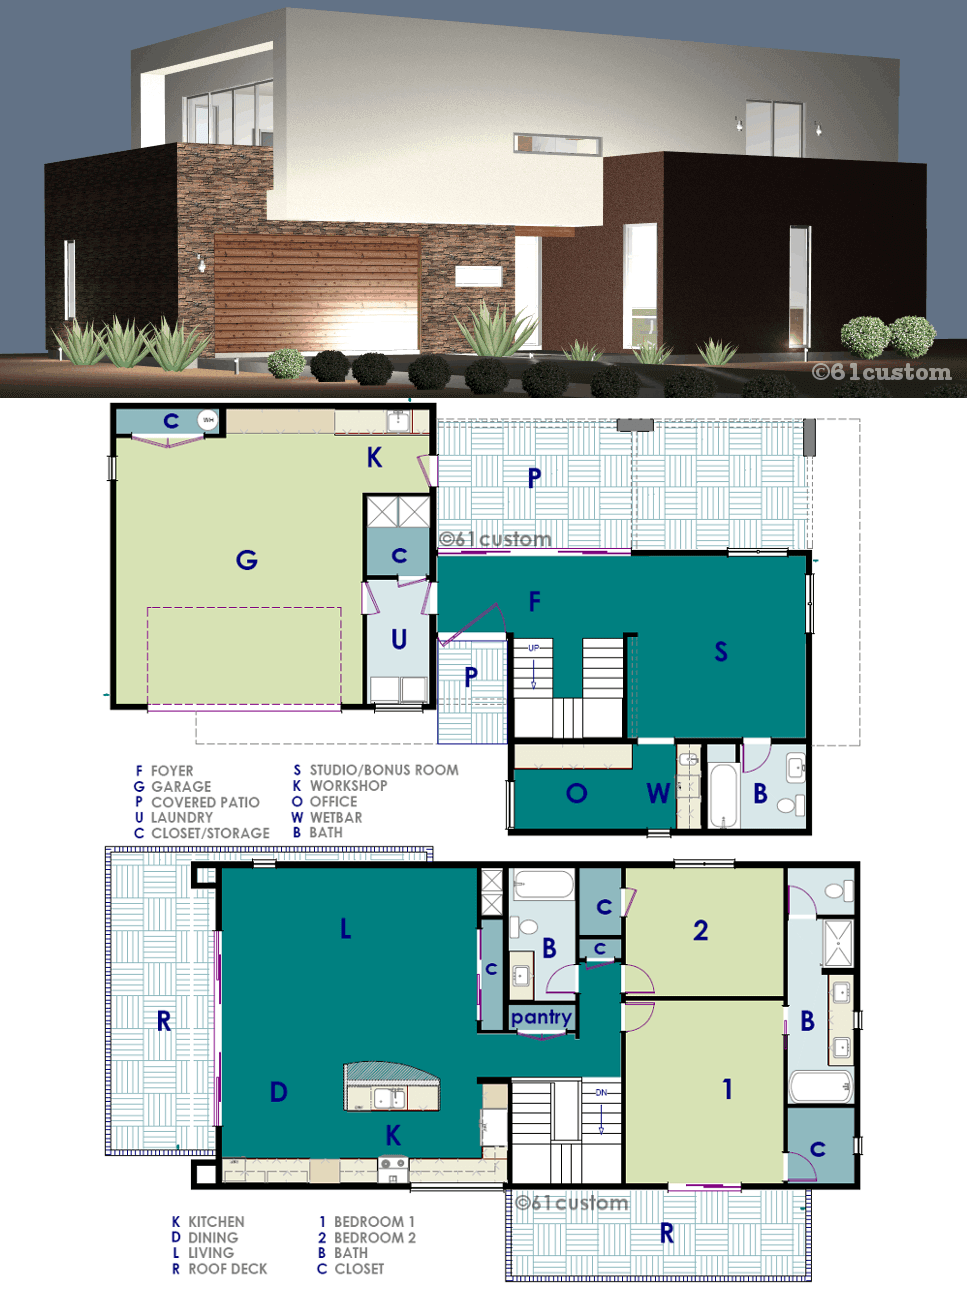 Ultra modern live work house plan 61custom for Custom home design online